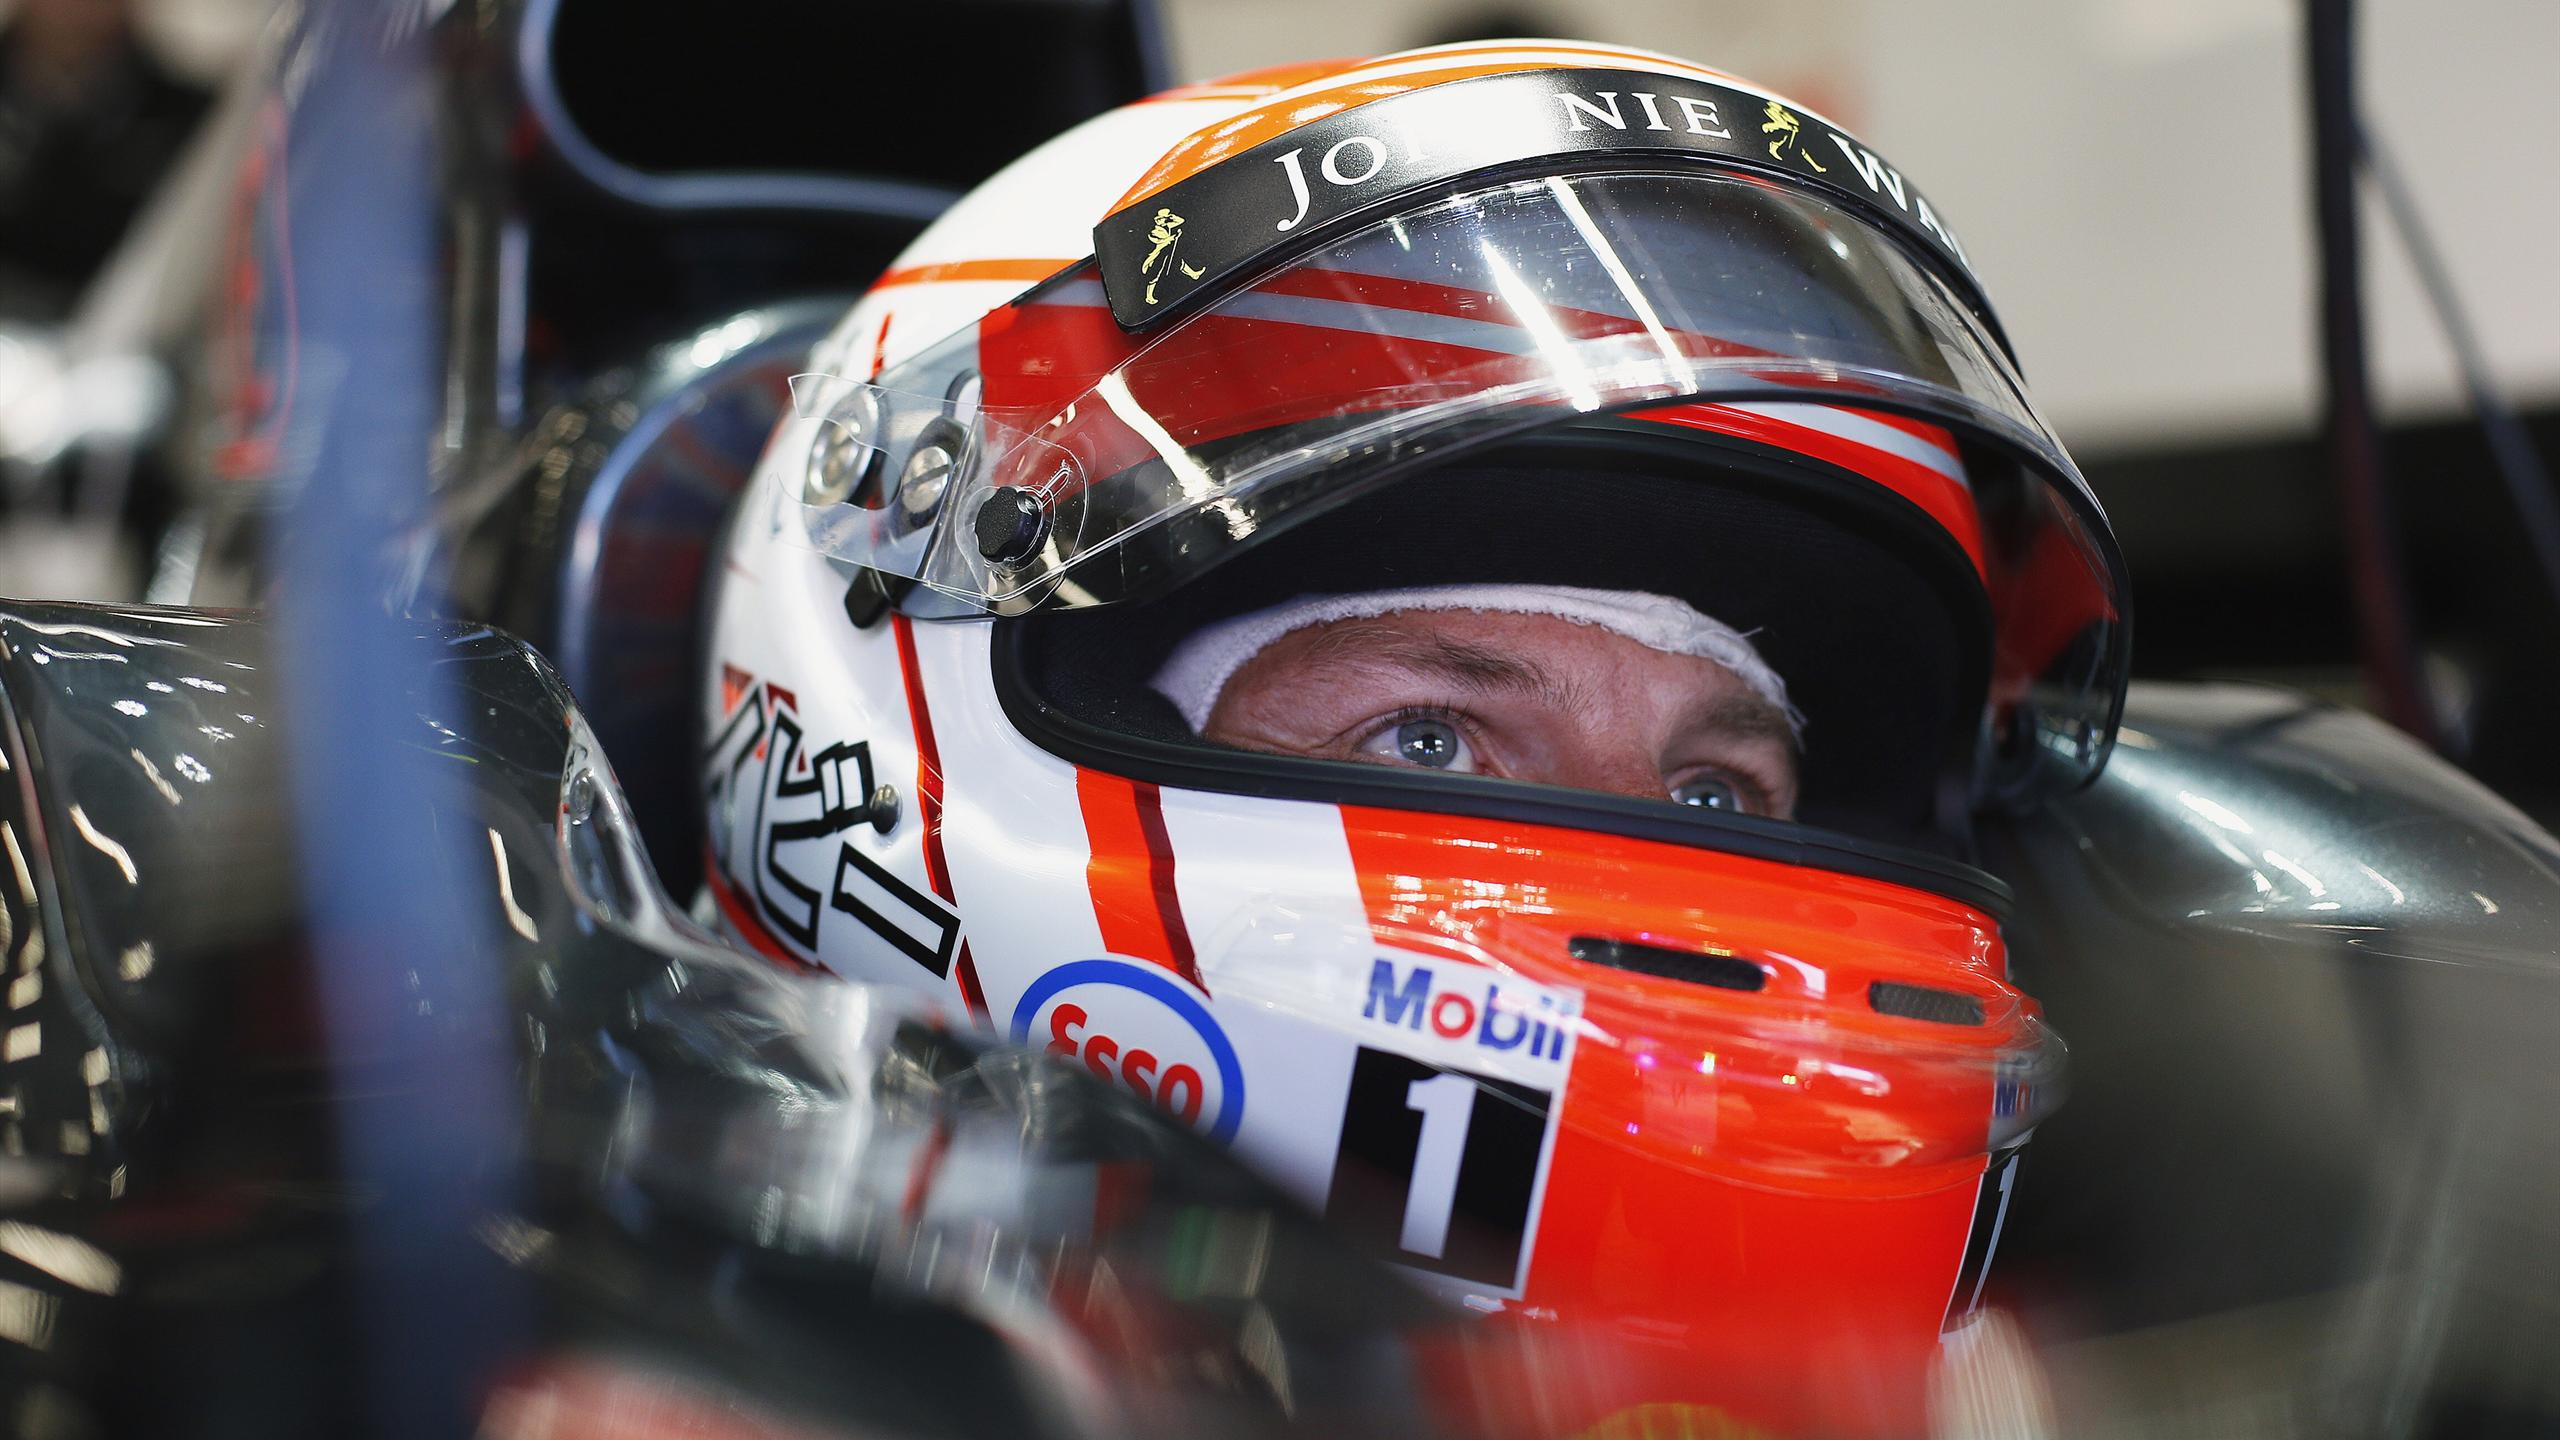 Jenson Button (McLaren) - GP of Italy 2015